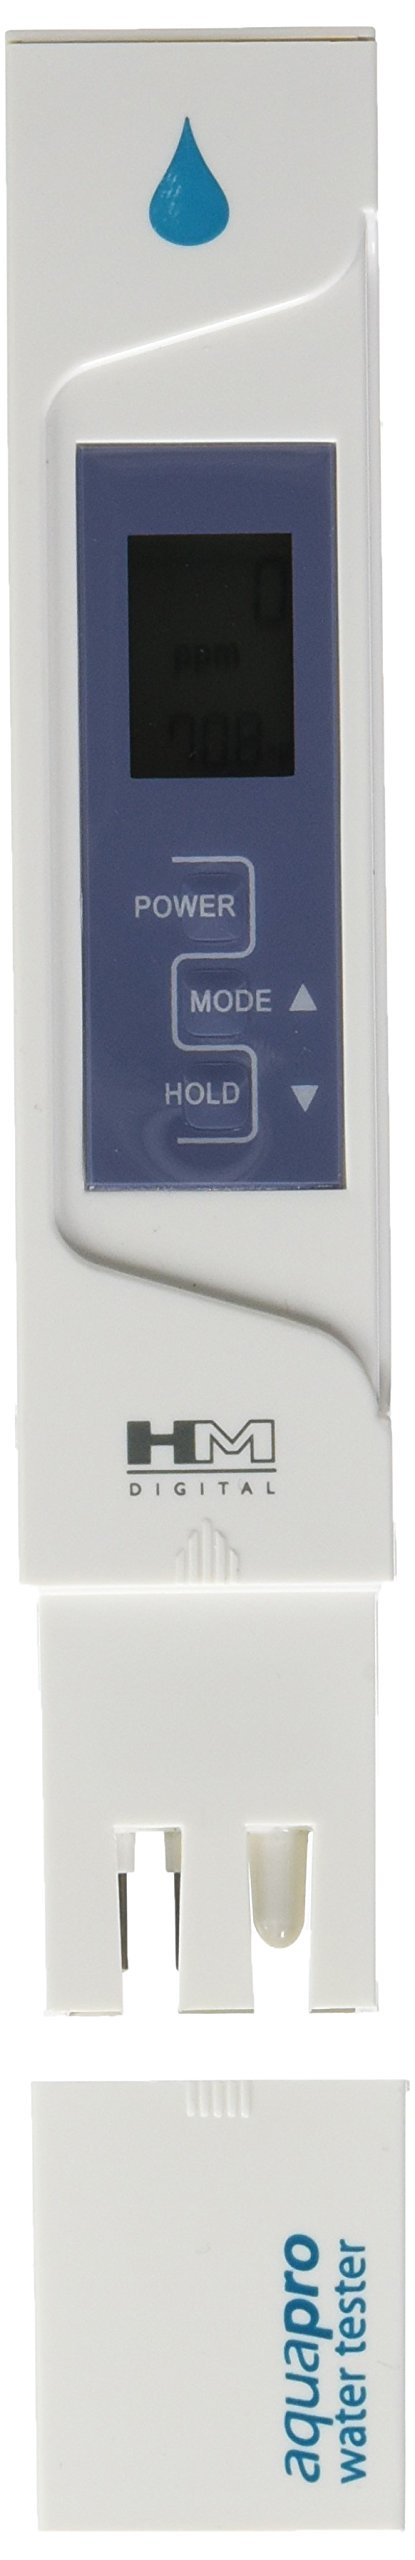 HM Digital AP-1 AquaPro Water Quality Total Dissolved Solids Tester, 0-5000 ppm TDS Range, 1 ppm Resolution, +/- 2% Readout Accuracy (Magnetic Body)